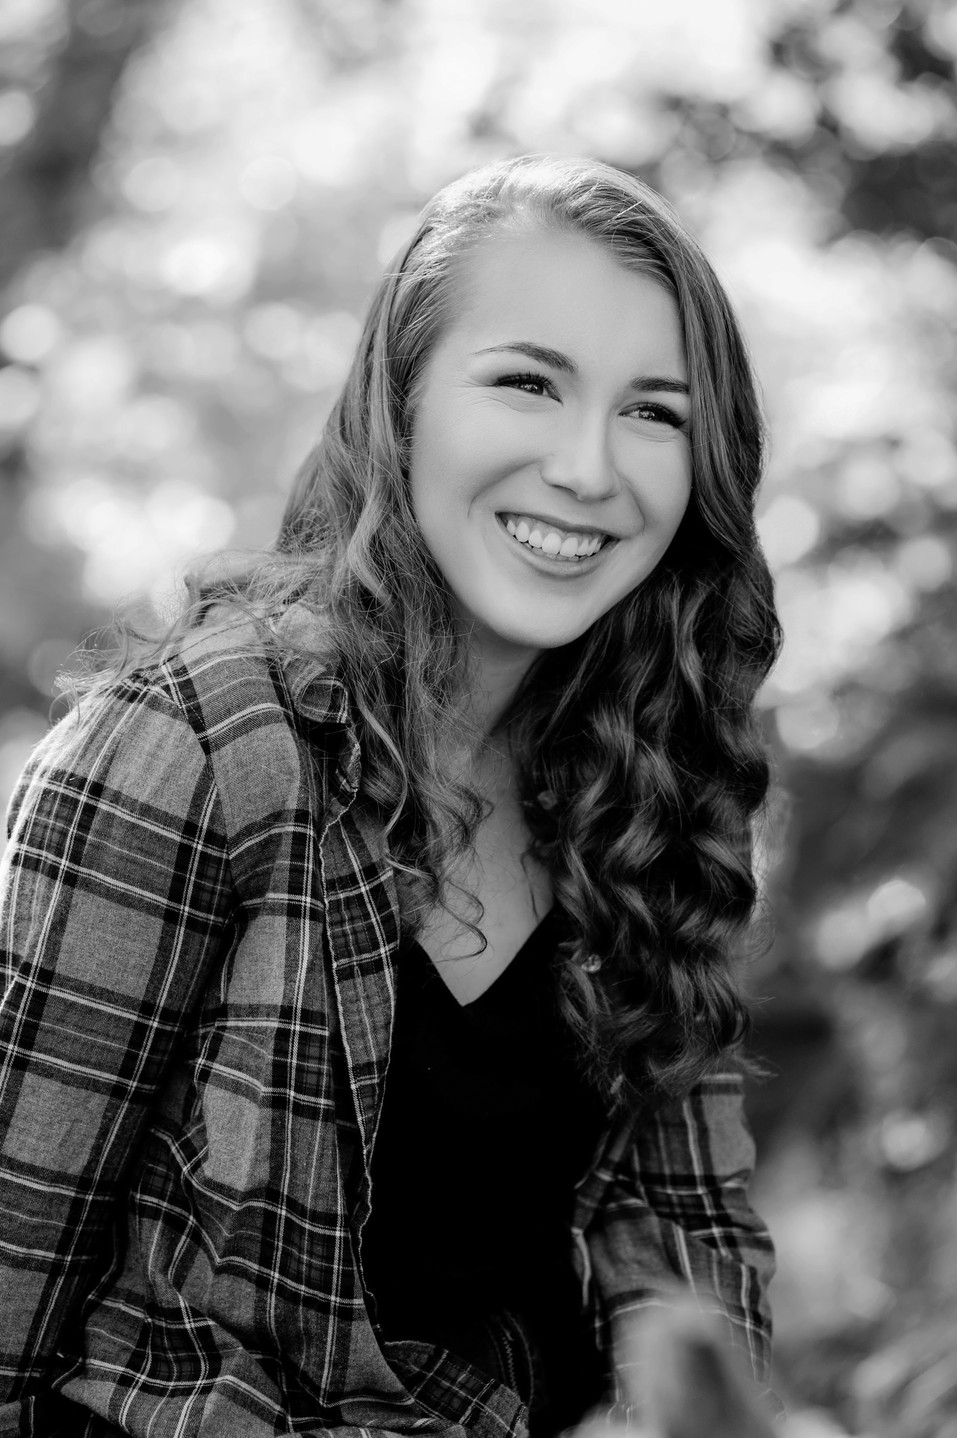 A great smiling senior high school picture in black and white of a teenage girl.